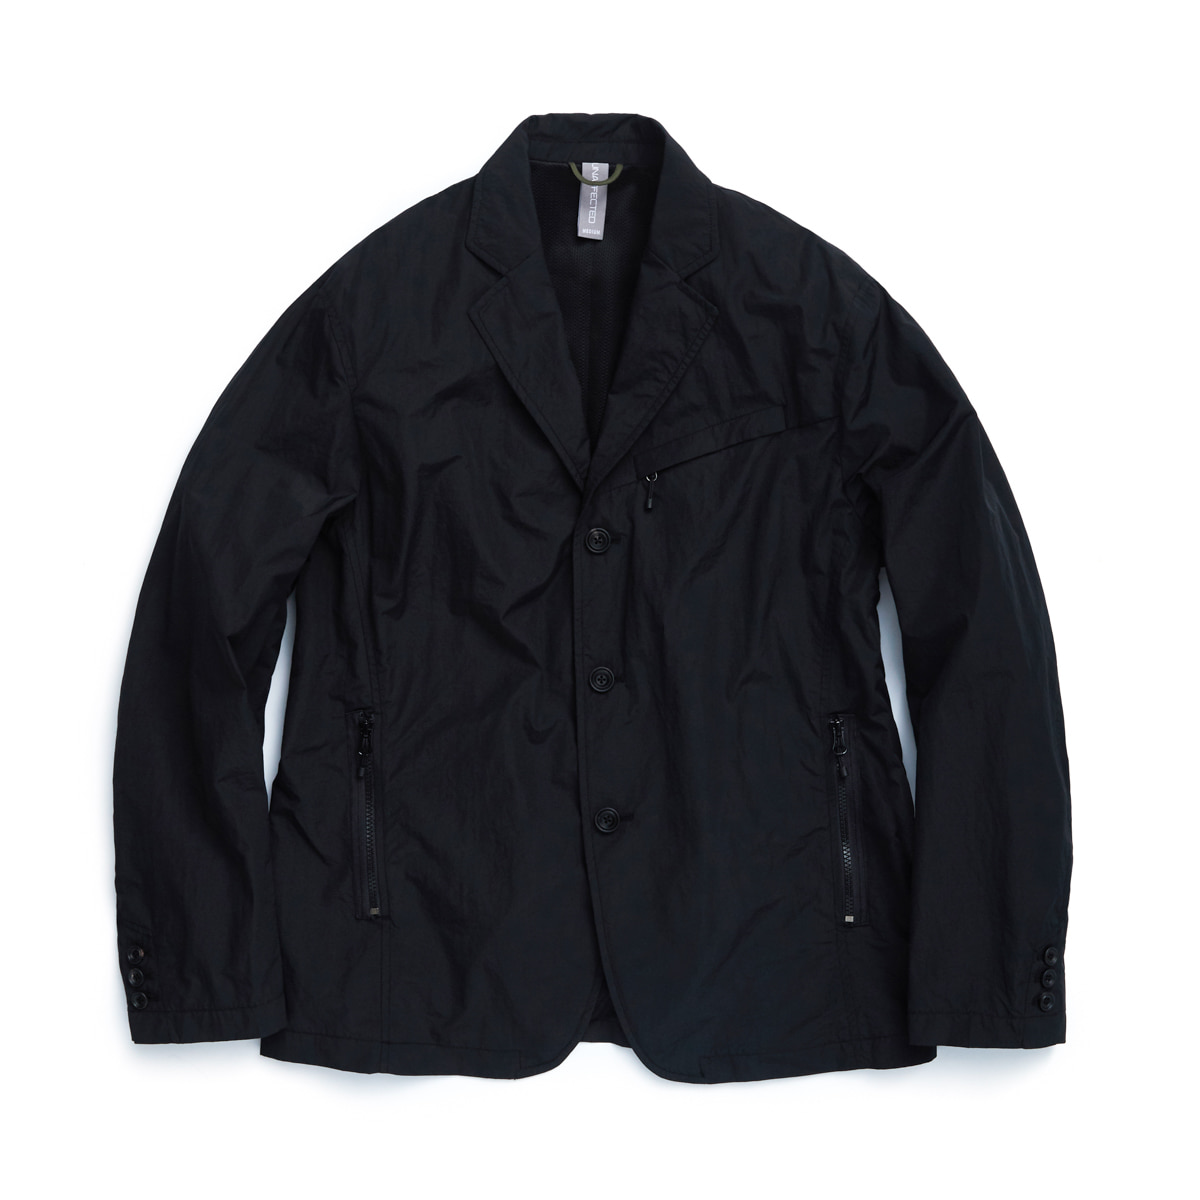 언어펙티드 FUNCTIONAL JACKET_Black